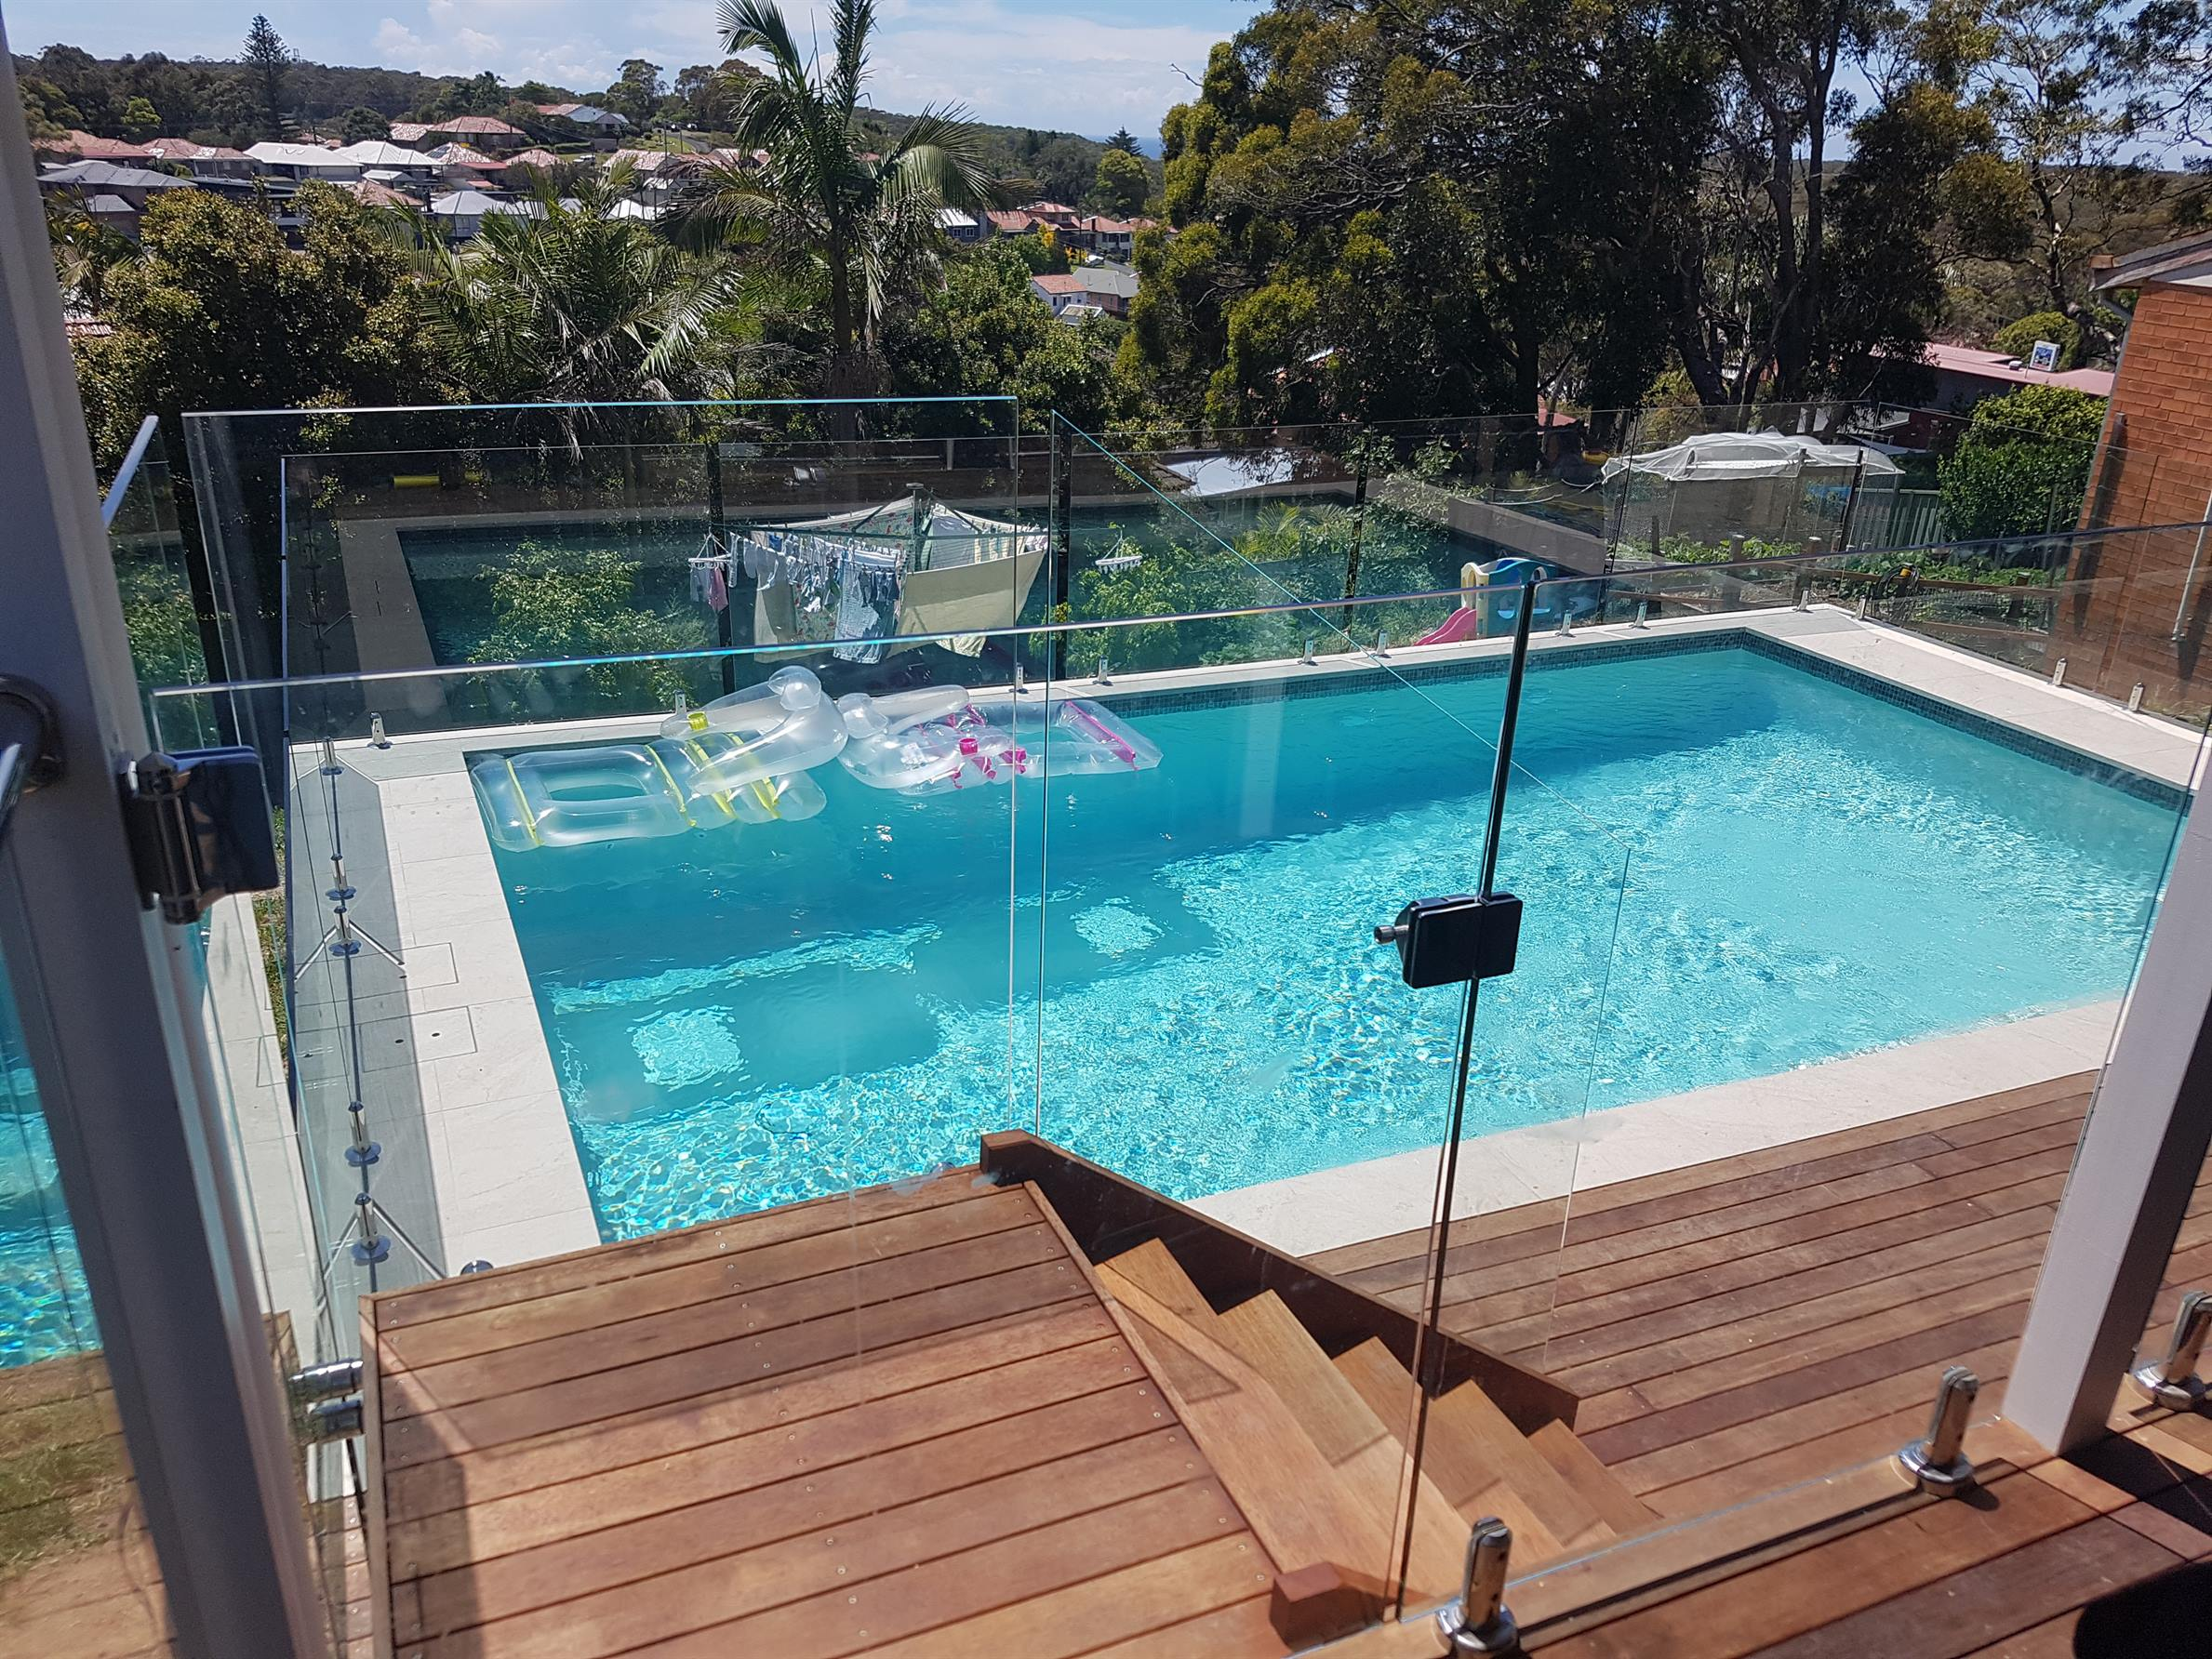 How Can A Quality Glass Pool Fence Add Value To Your Home?